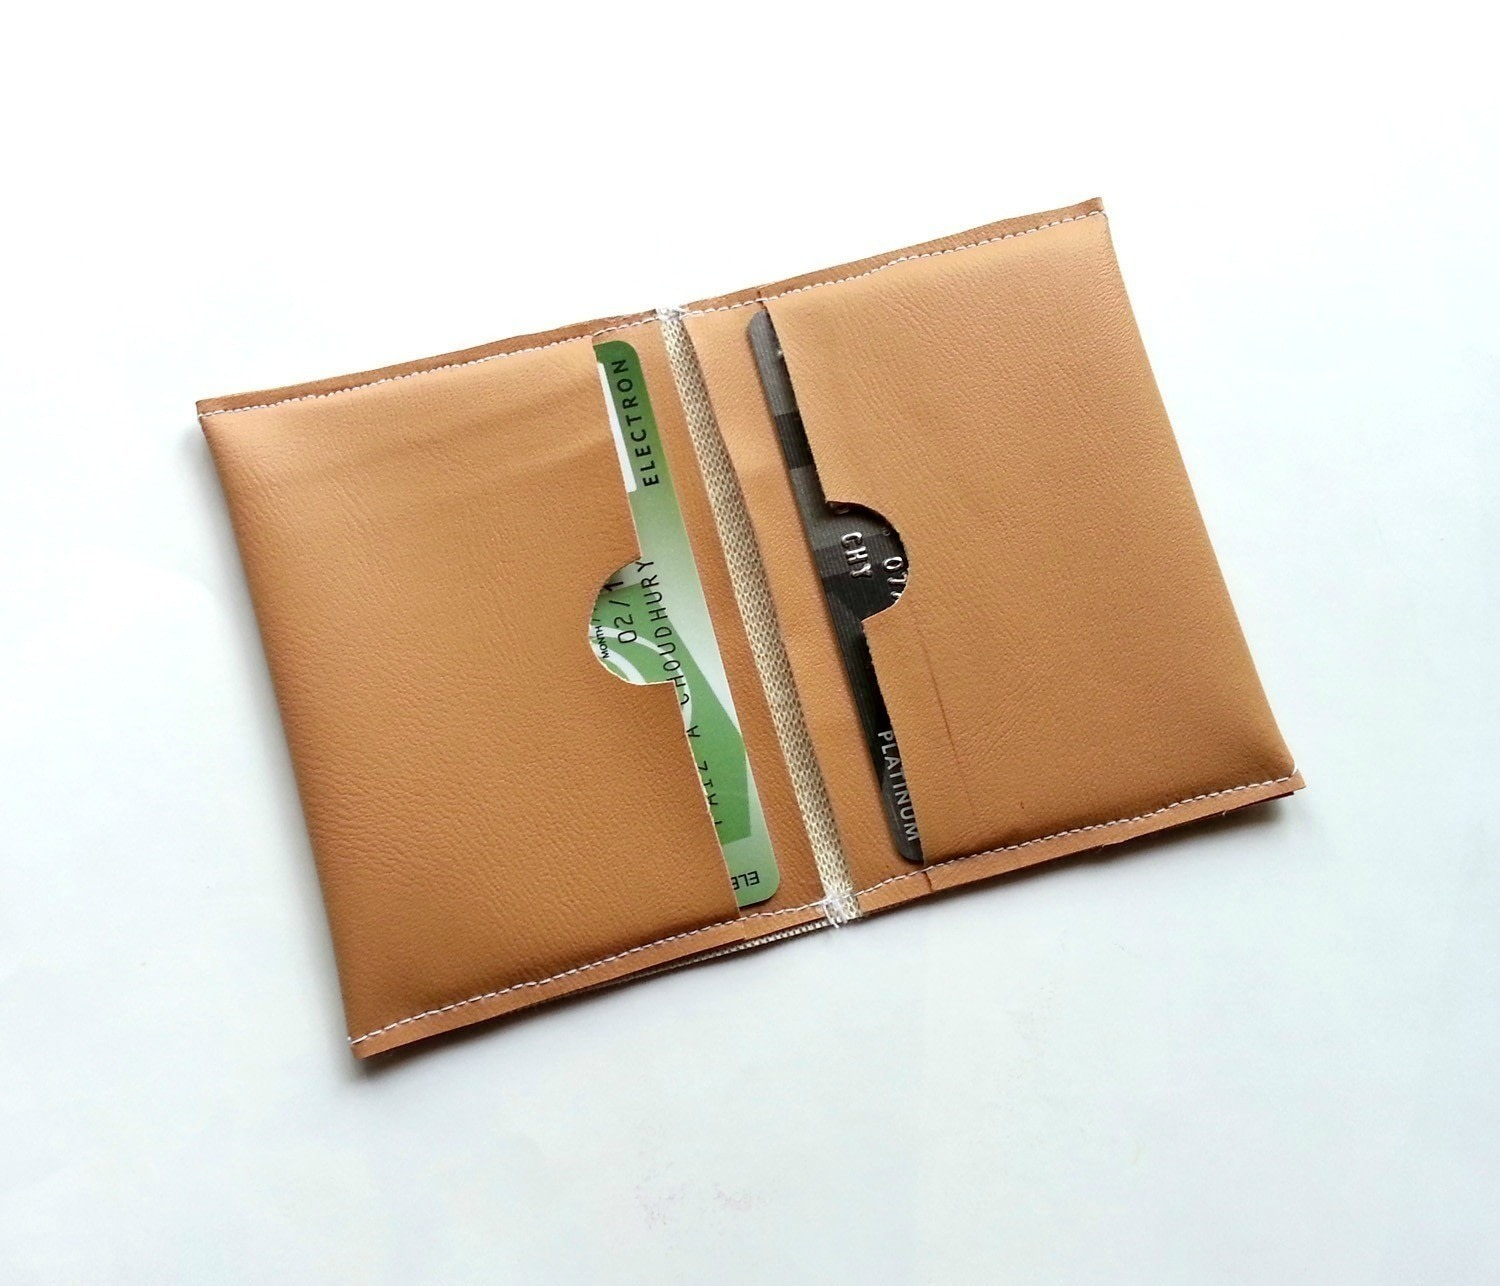 Diy Card Holder · How To Make A Pouch, Purse Or Wallet